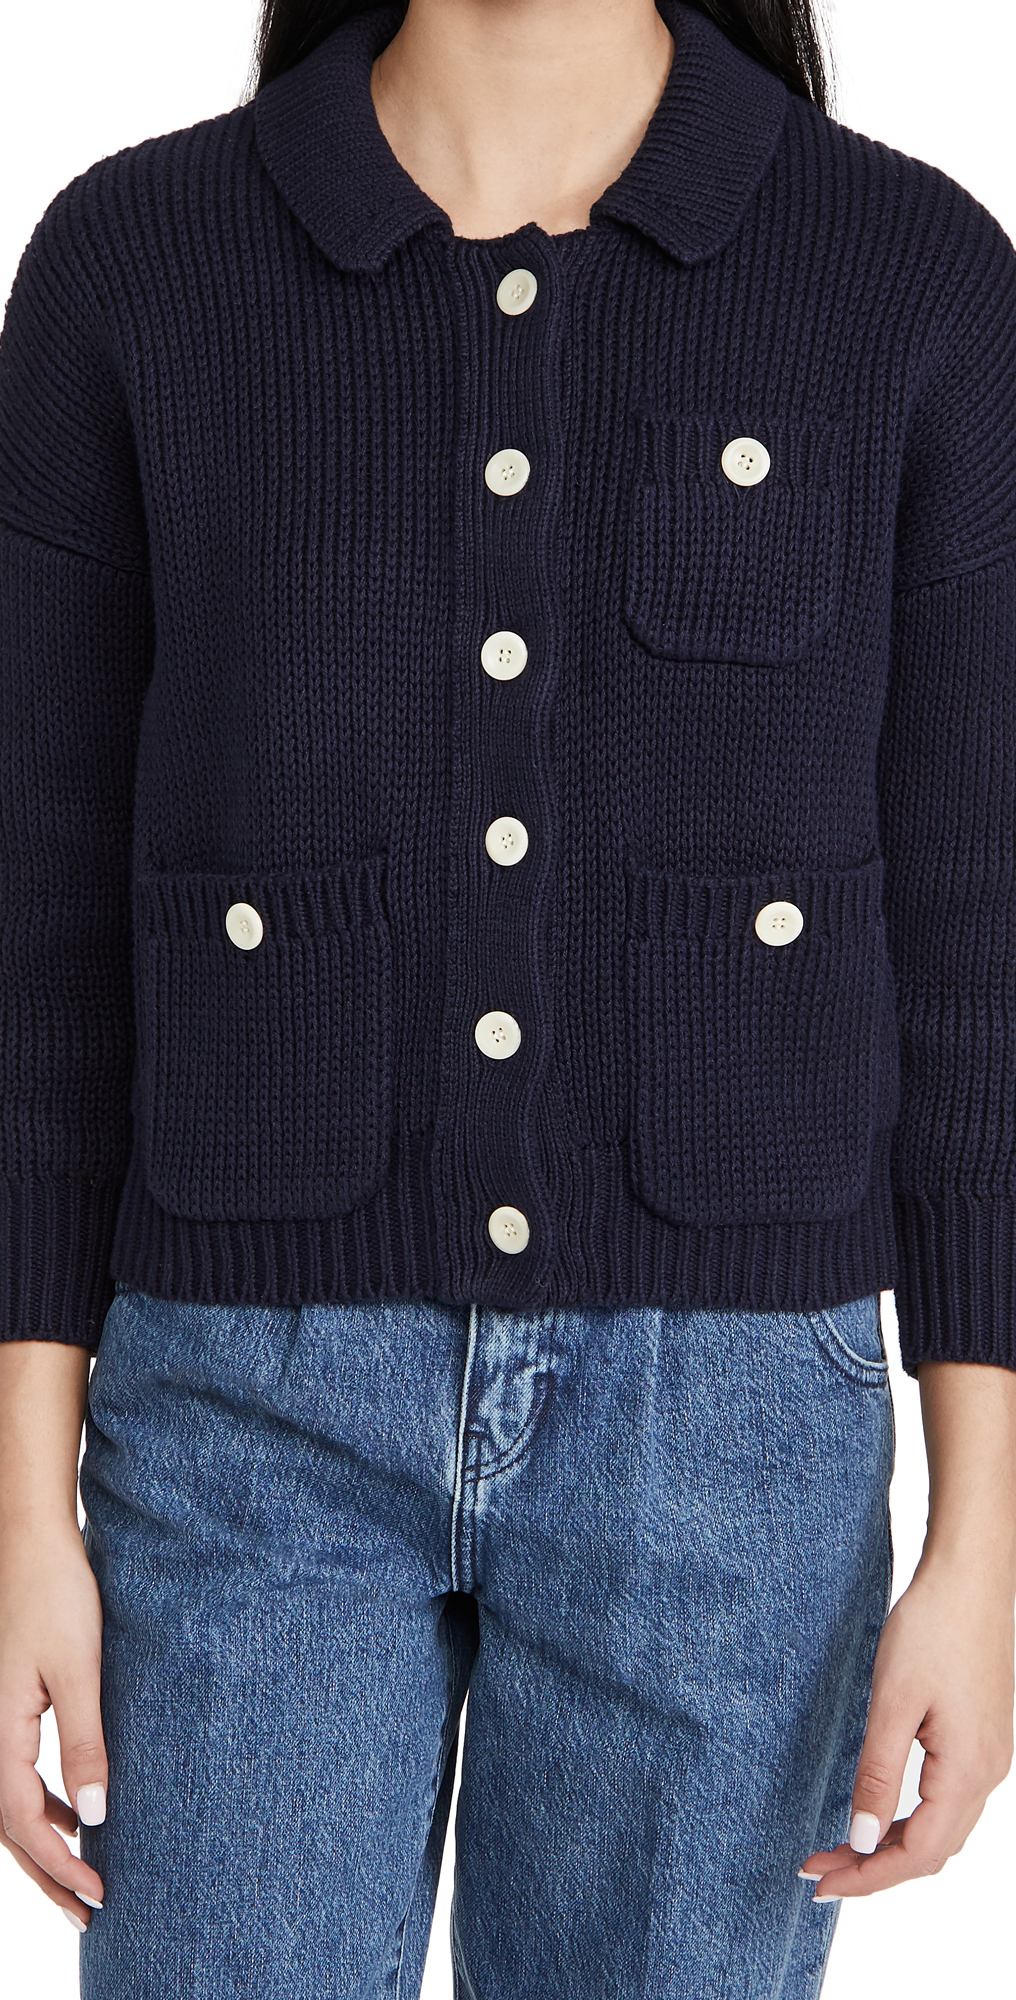 Alex Mill Work Sweater Jacket